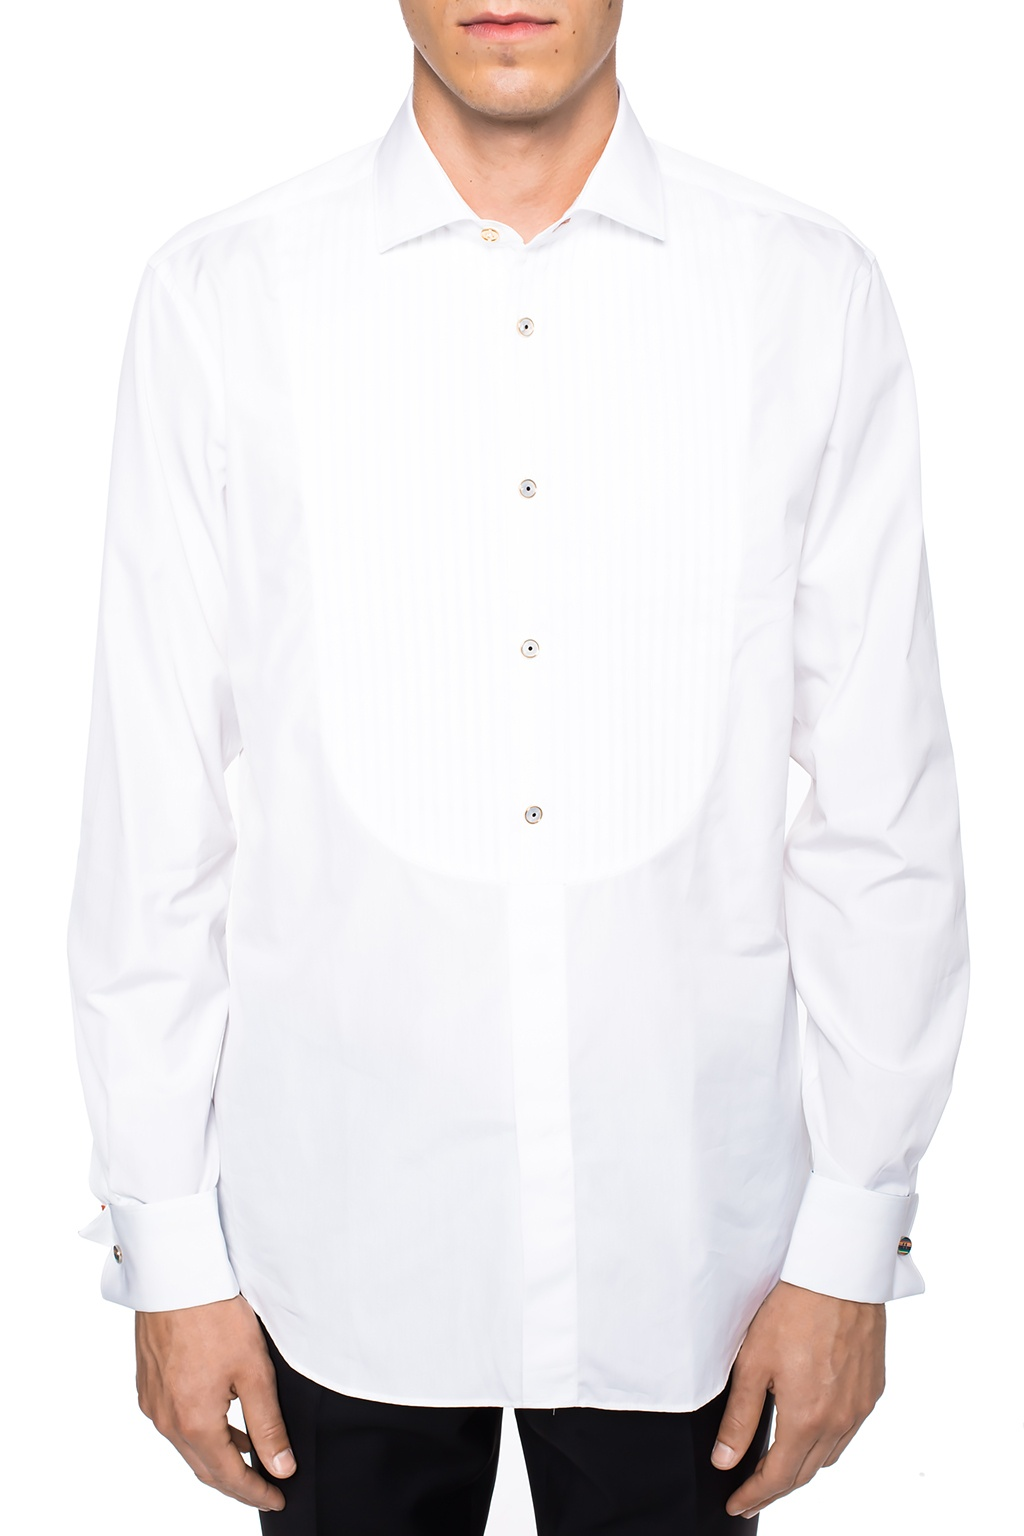 Paul Smith Tuxedo shirt